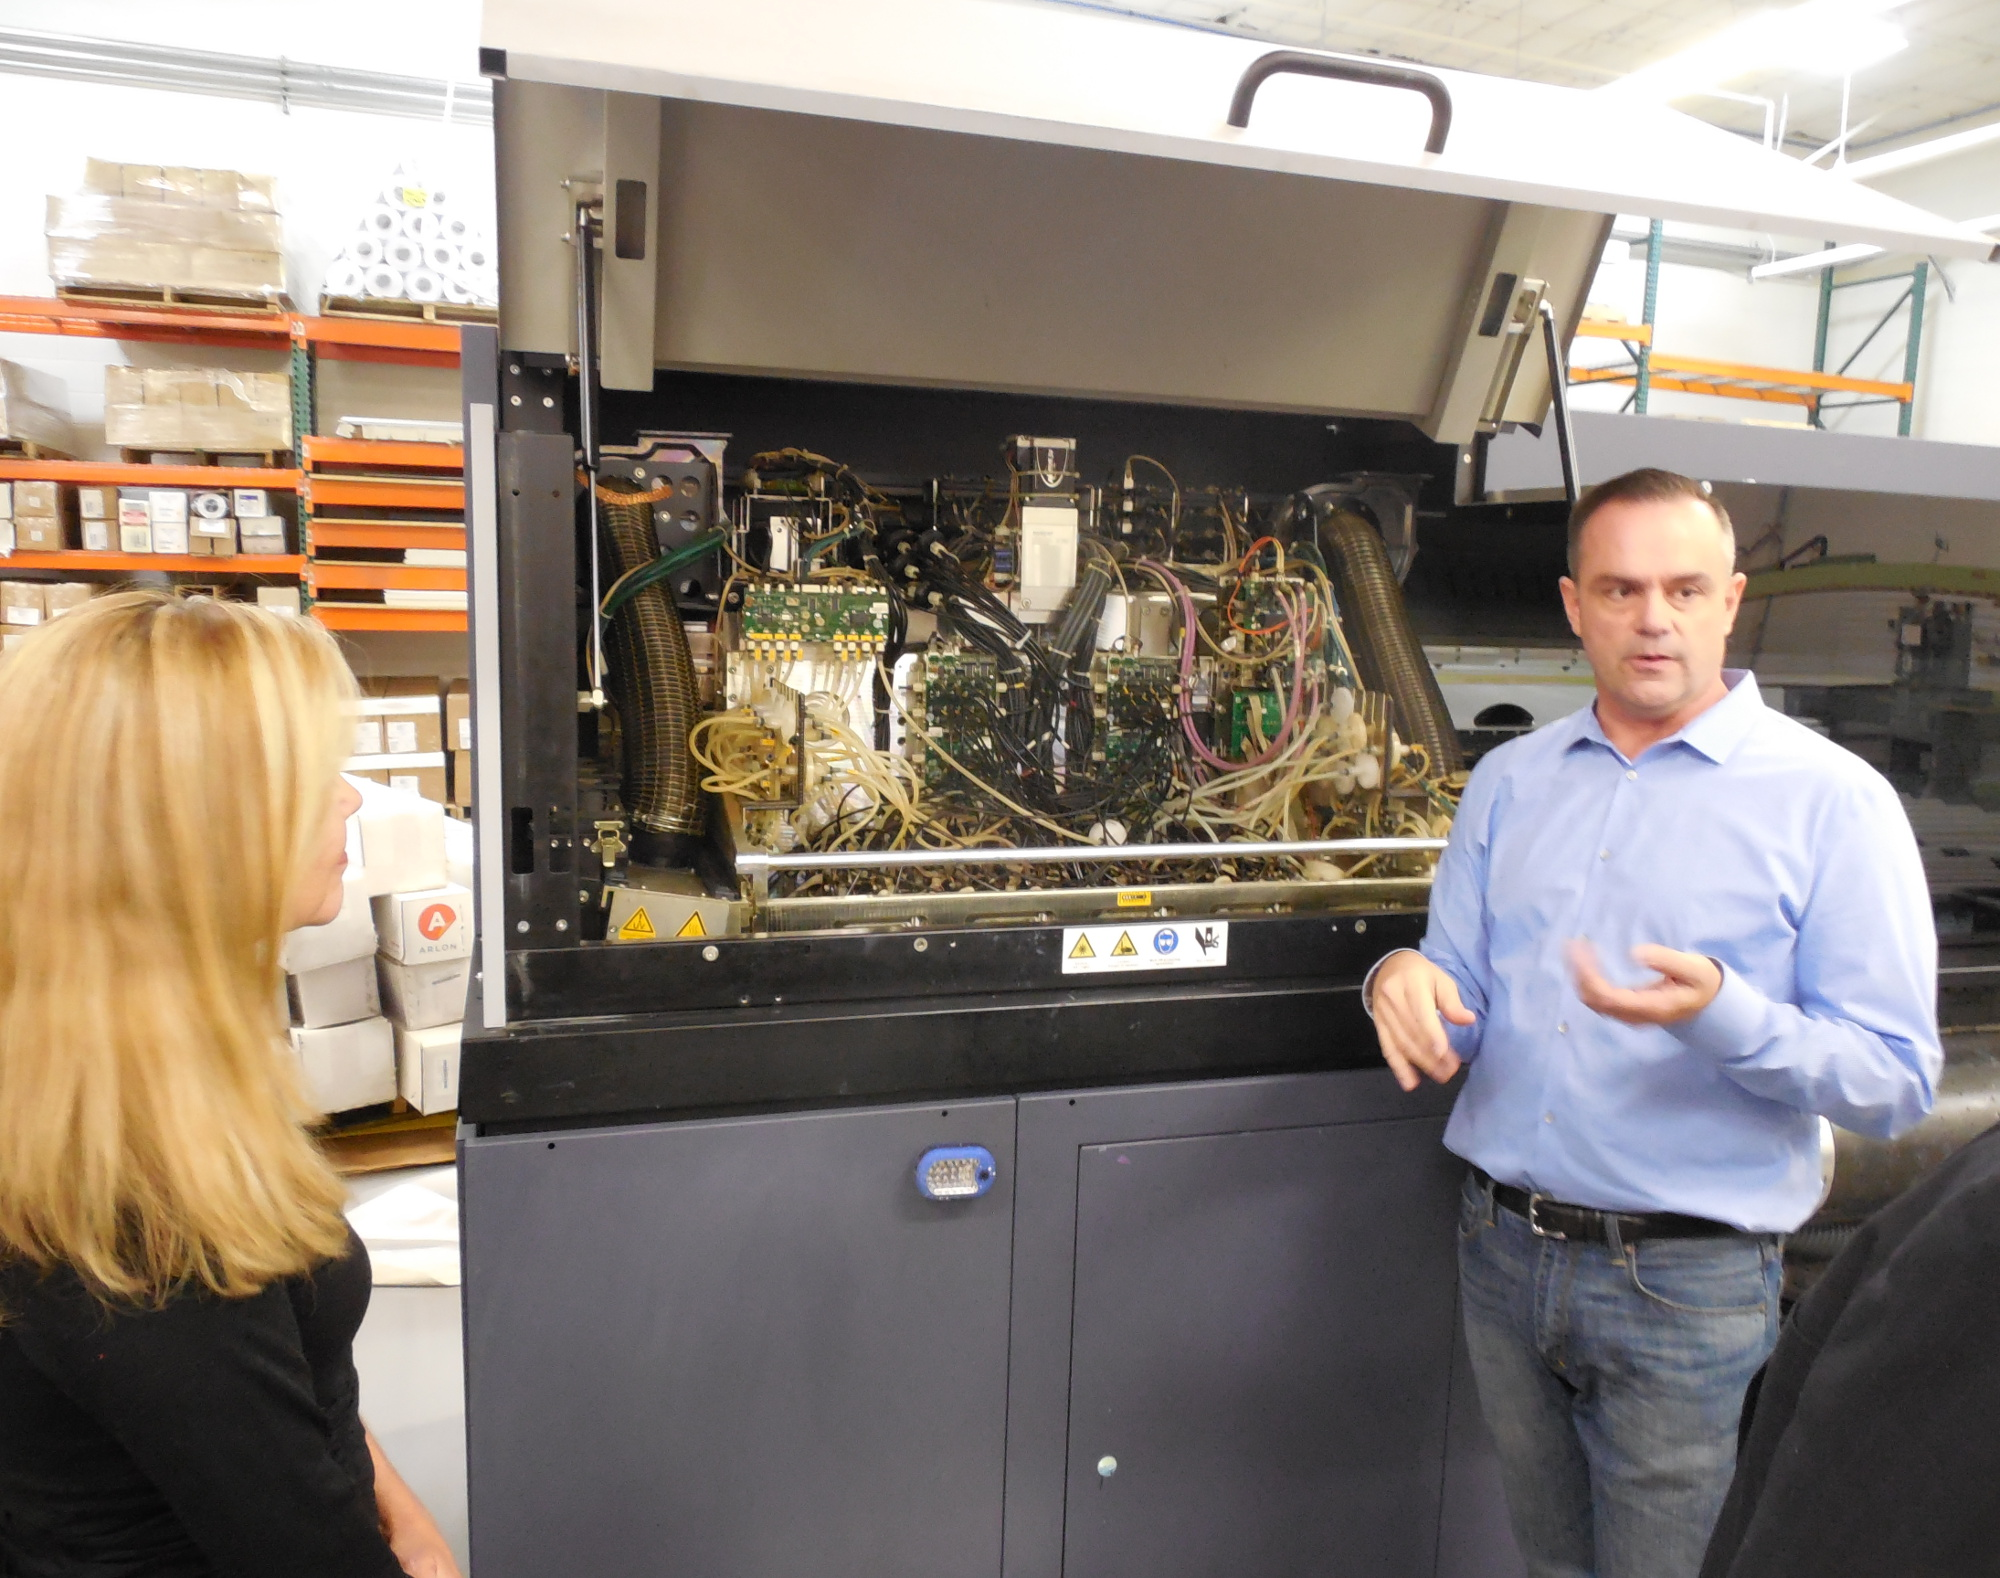 Josh Bevans shows off a high-tech printing press to Small Business Administration Regional Director Betsy Marky during a tour of Design to Print, St. George, Utah, Nov. 17, 2016   Photo by Julie Applegate, St. George News